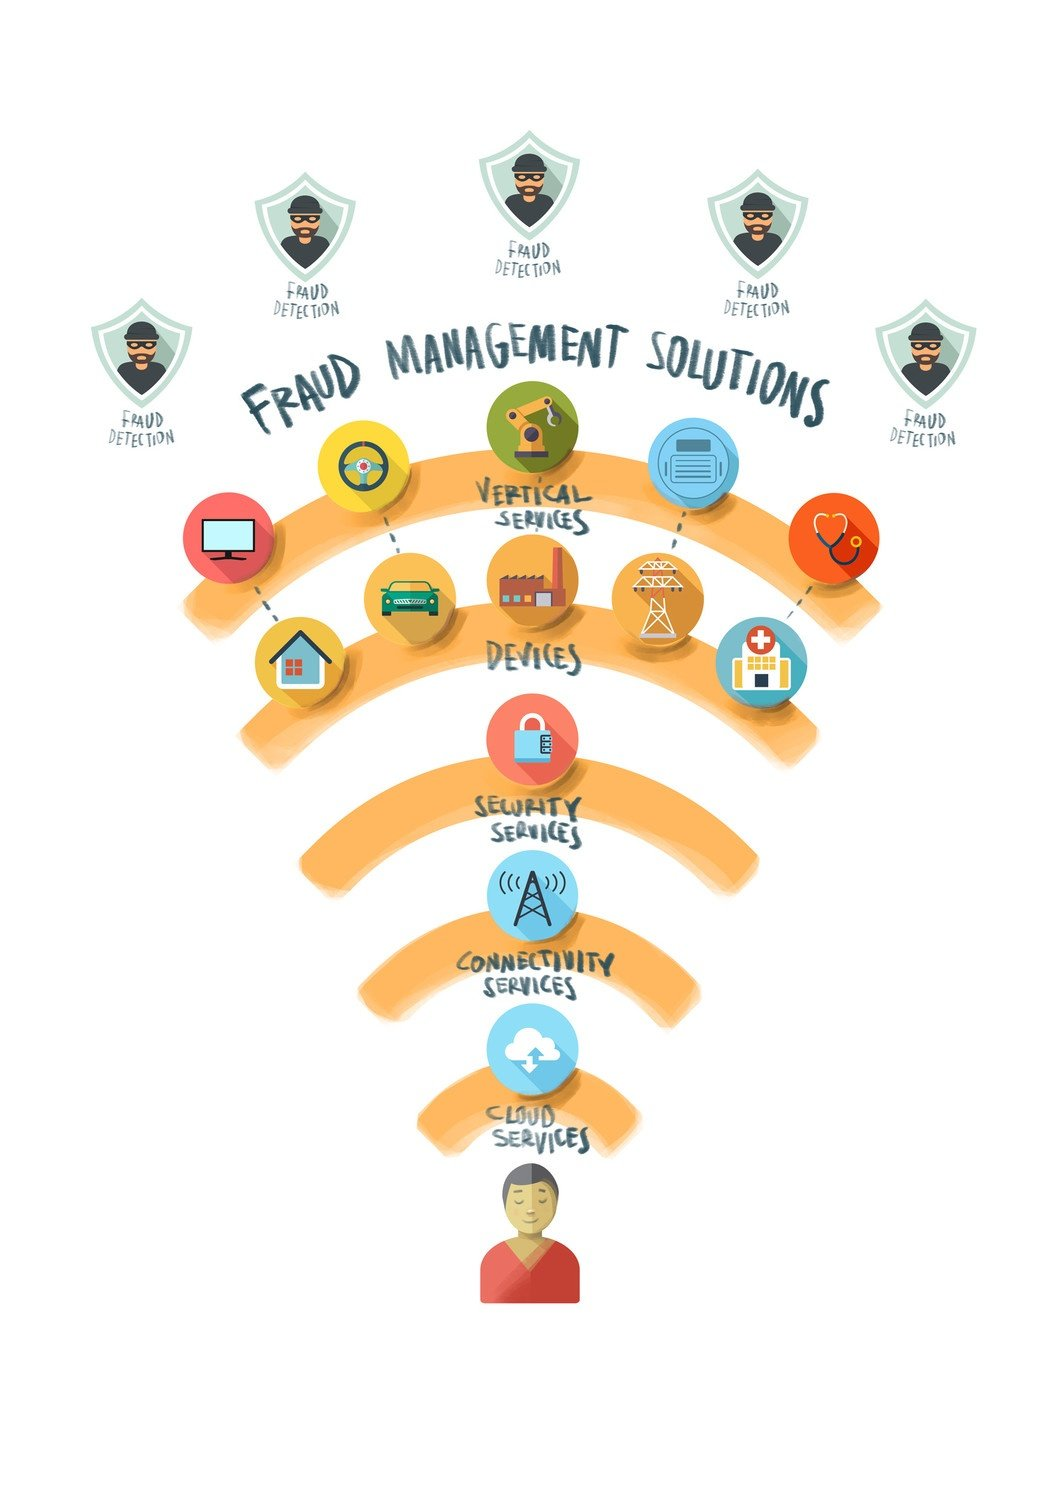 Fraud Management Solutions